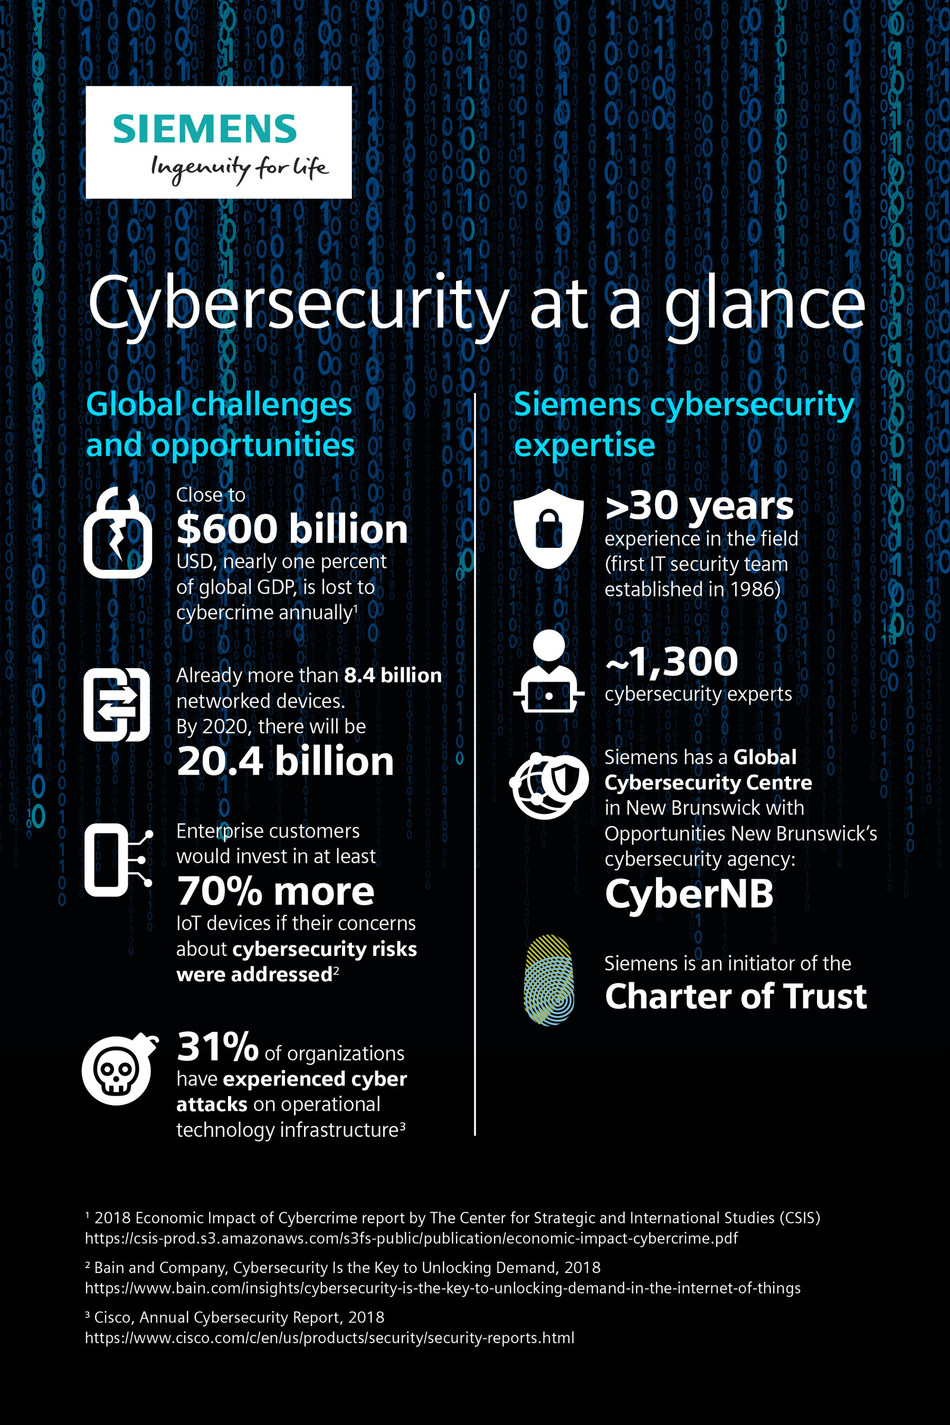 Siemens Cybersecurity Infographic (CNW Group/Siemens Canada Limited)